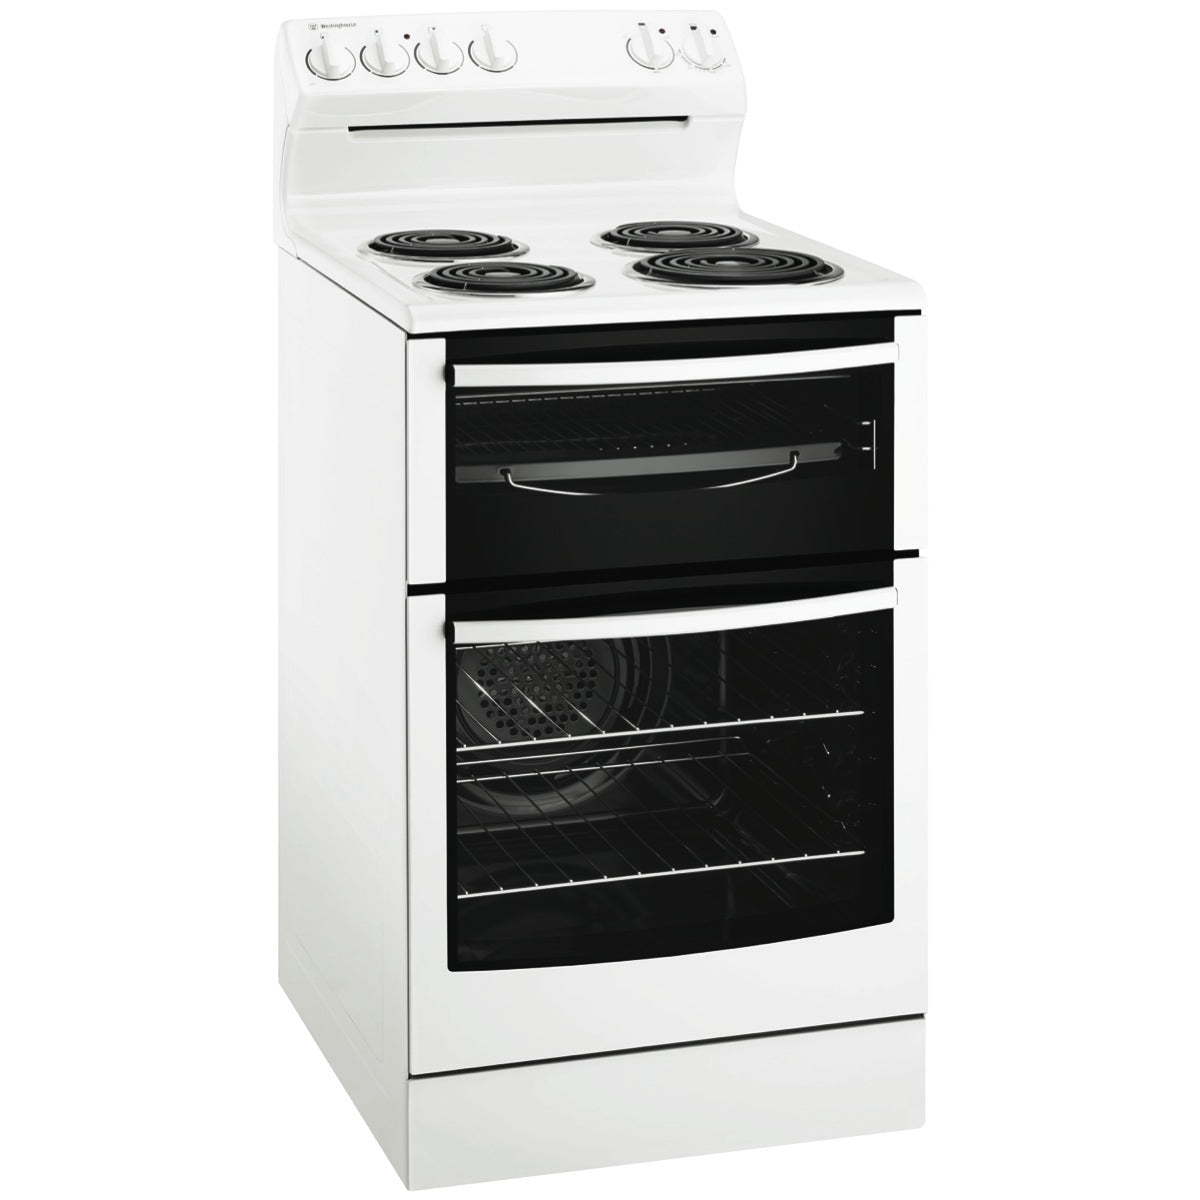 Westinghouse WLE525WA 54Cm Freestanding Electric Cooker White